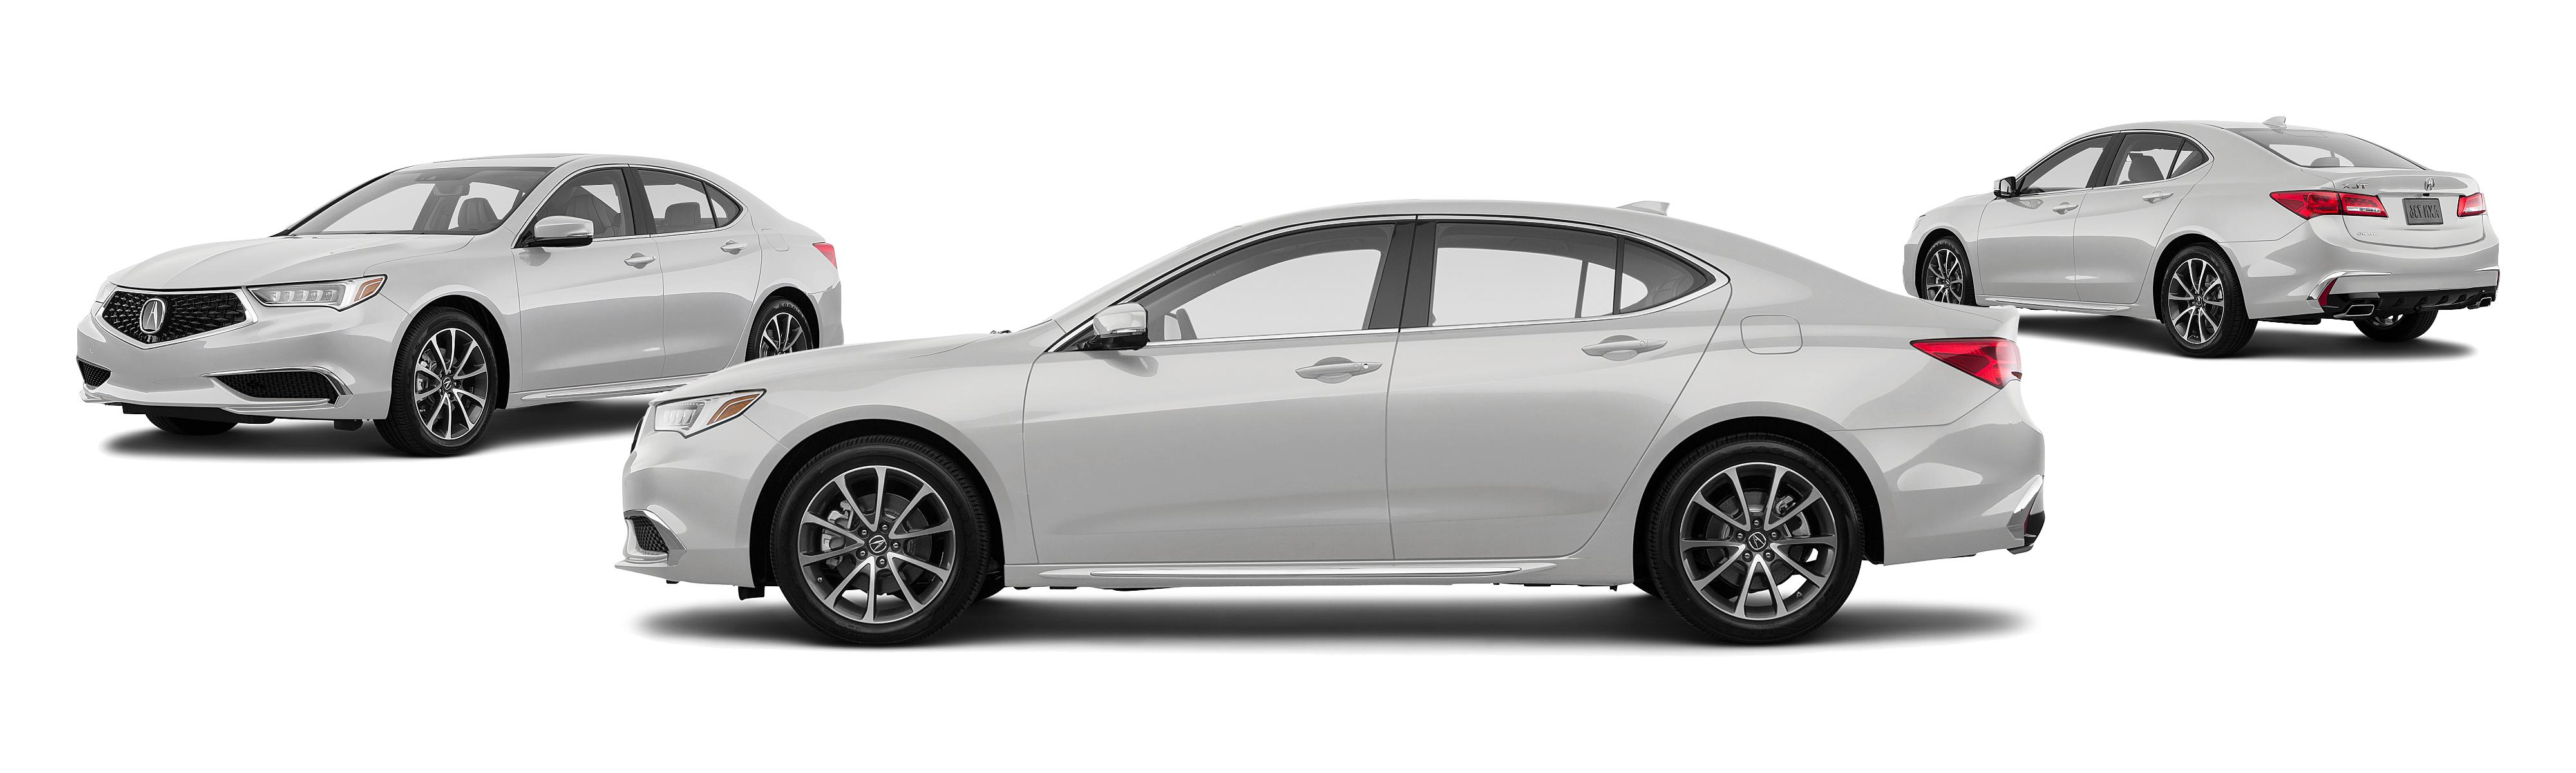 2018 acura tlx sh awd v6 4dr sedan w technology and a spec package rh groovecar com